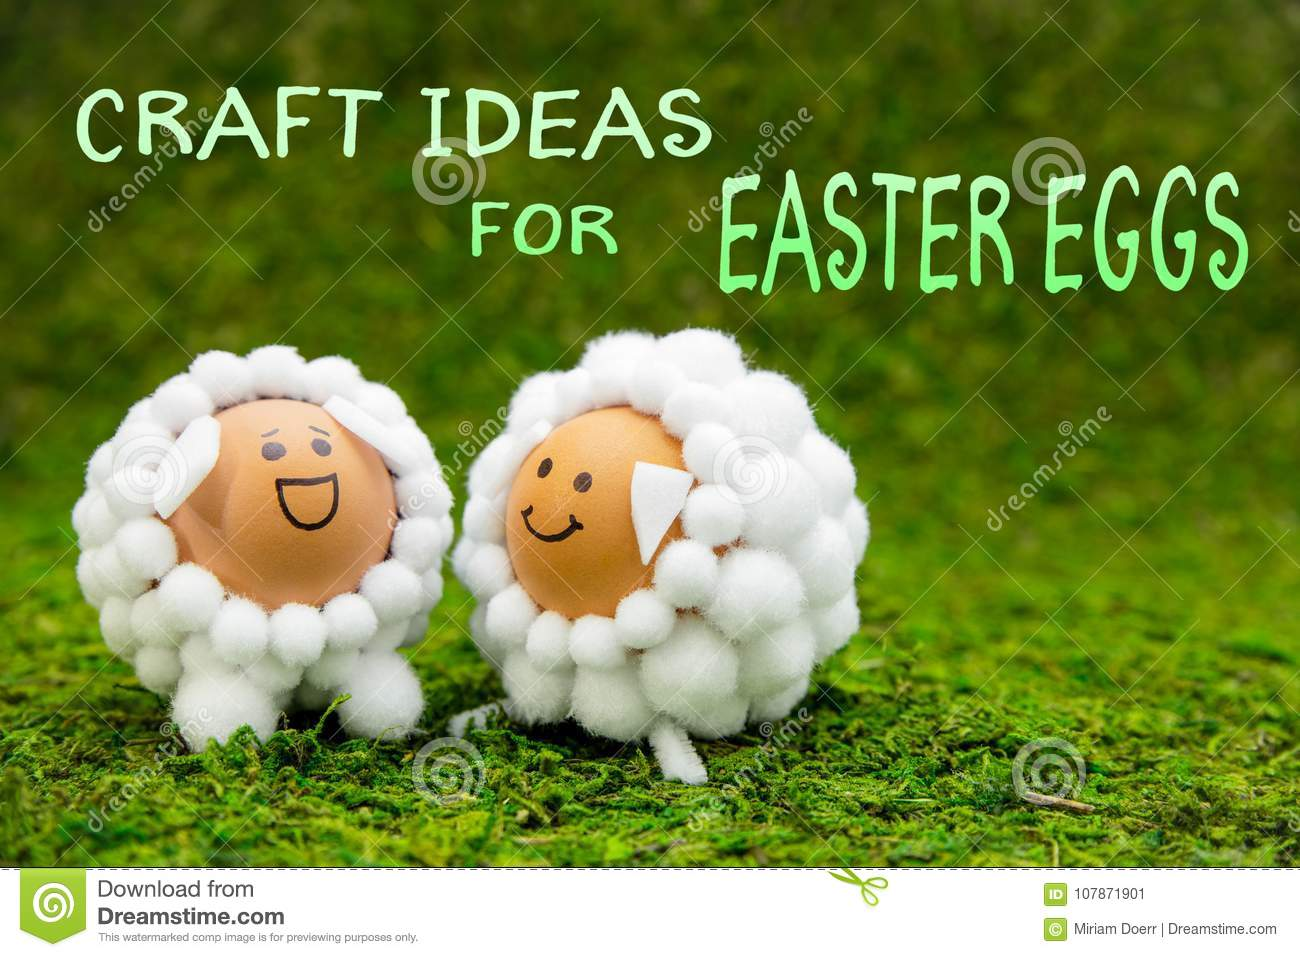 Craft Ideas For Easter Eggs Two Funny Lambs Or Sheep Shaped Egg